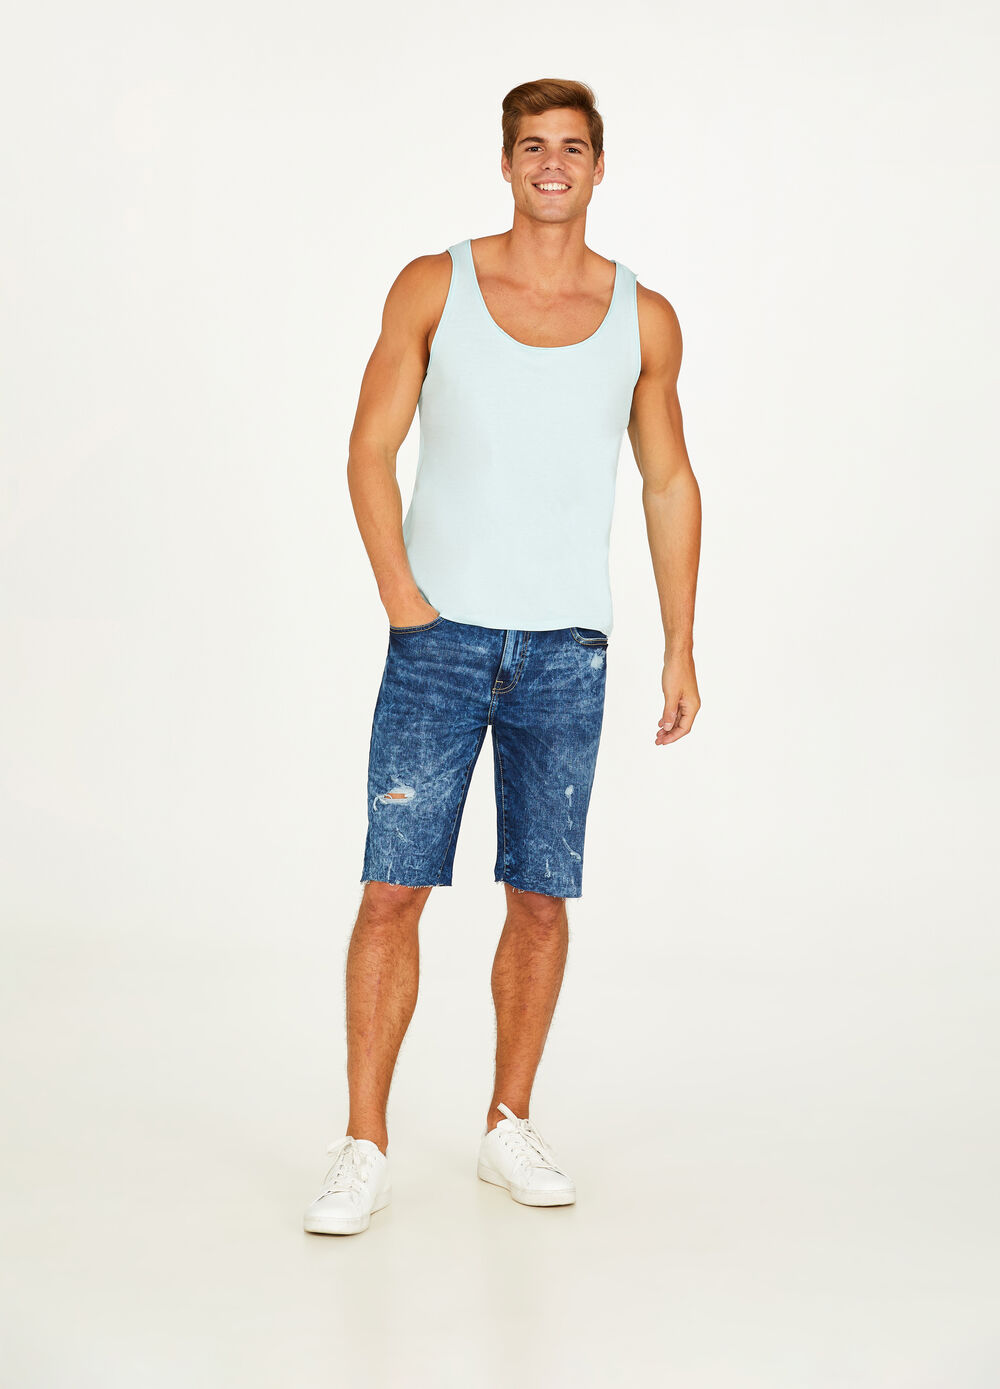 100% cotton vest with rolled edges